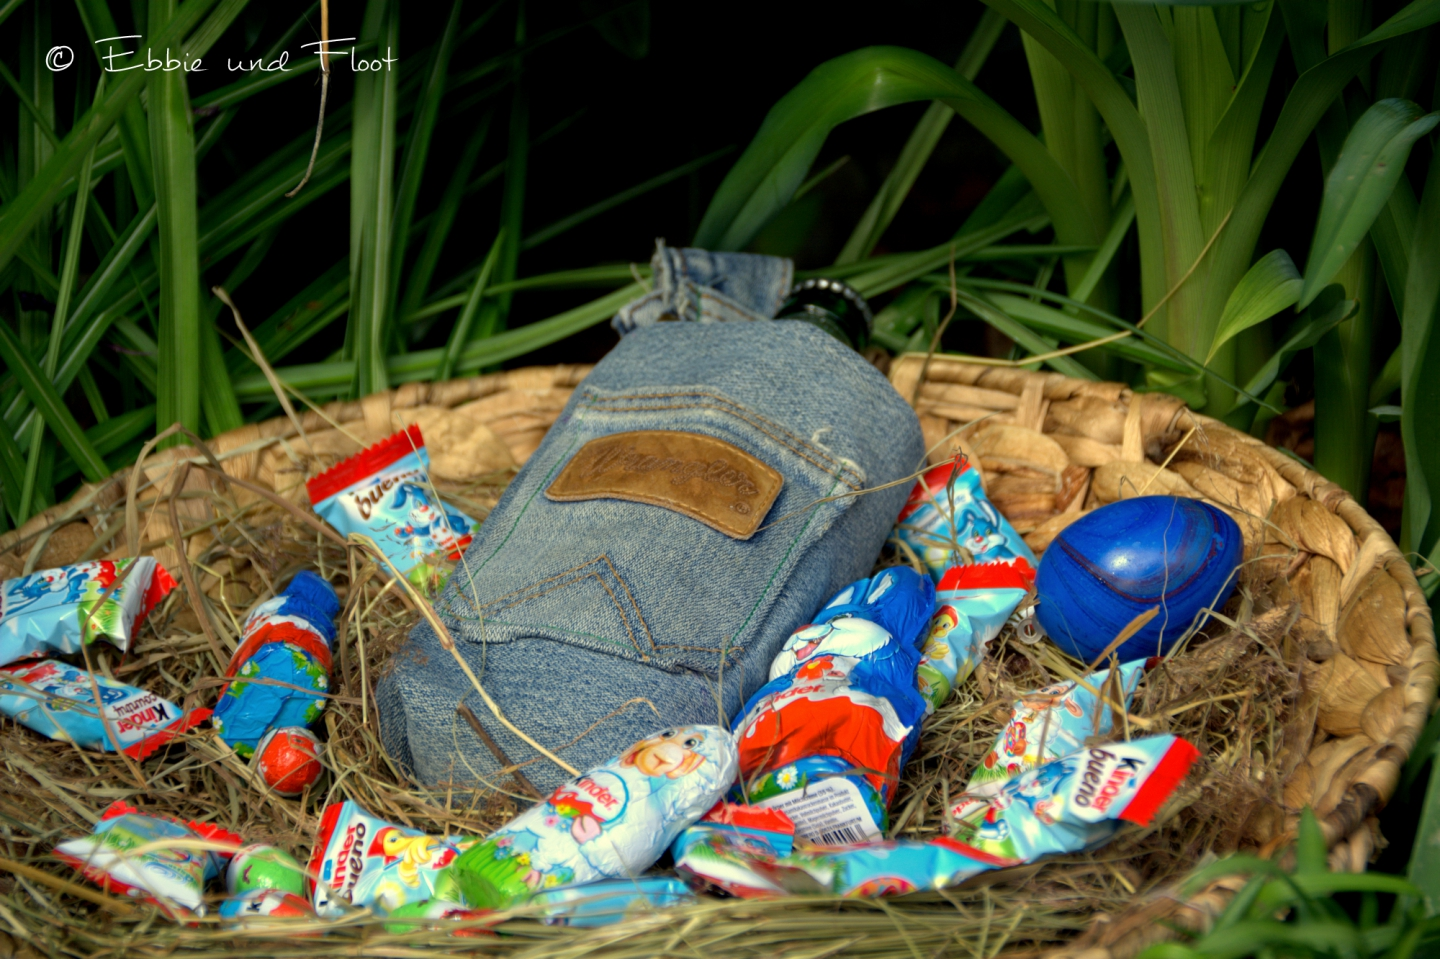 ebbie-und-floot_denim_Jeans_Flaschentasch_Flata_upcycling_0001